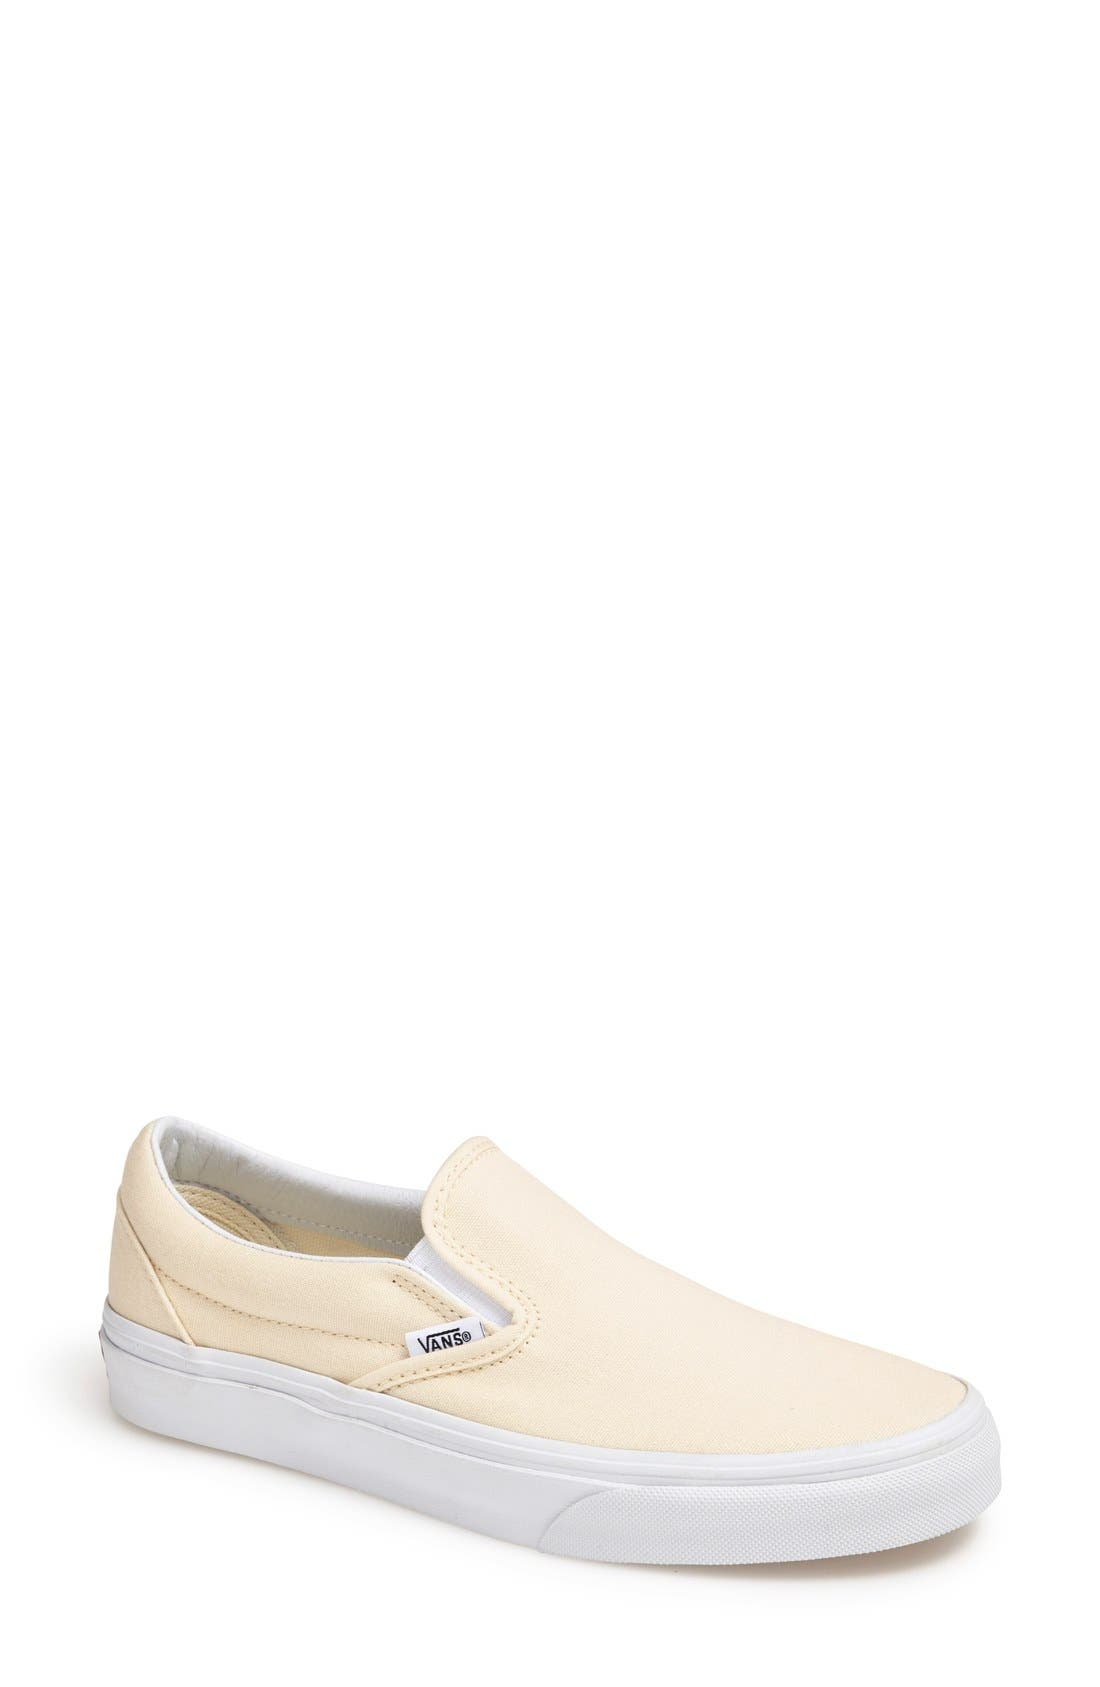 VANS 'Classic' Slip-On, Main, color, 101